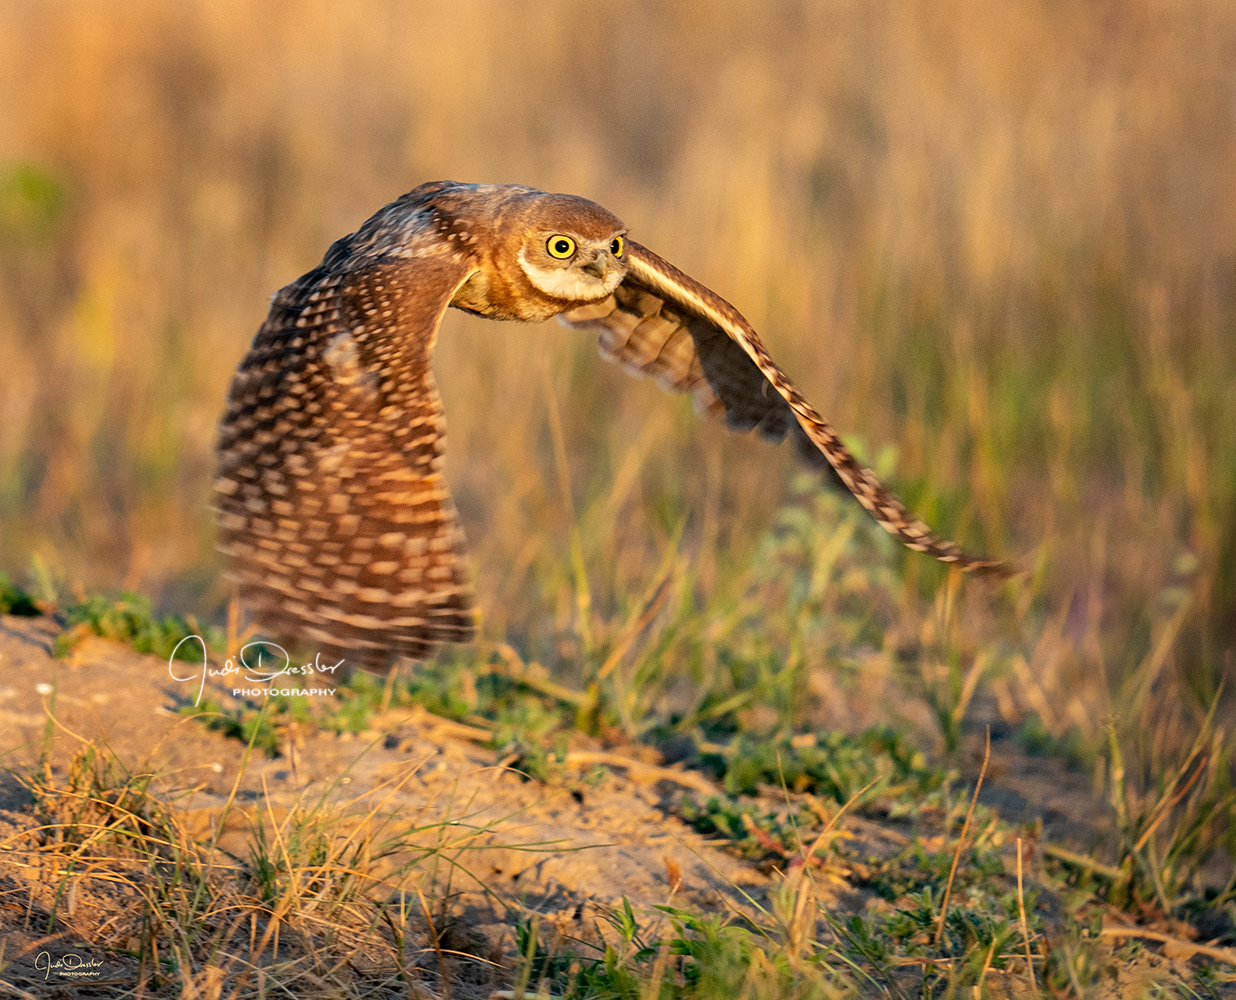 Young Burrowing Owl at Sunrise